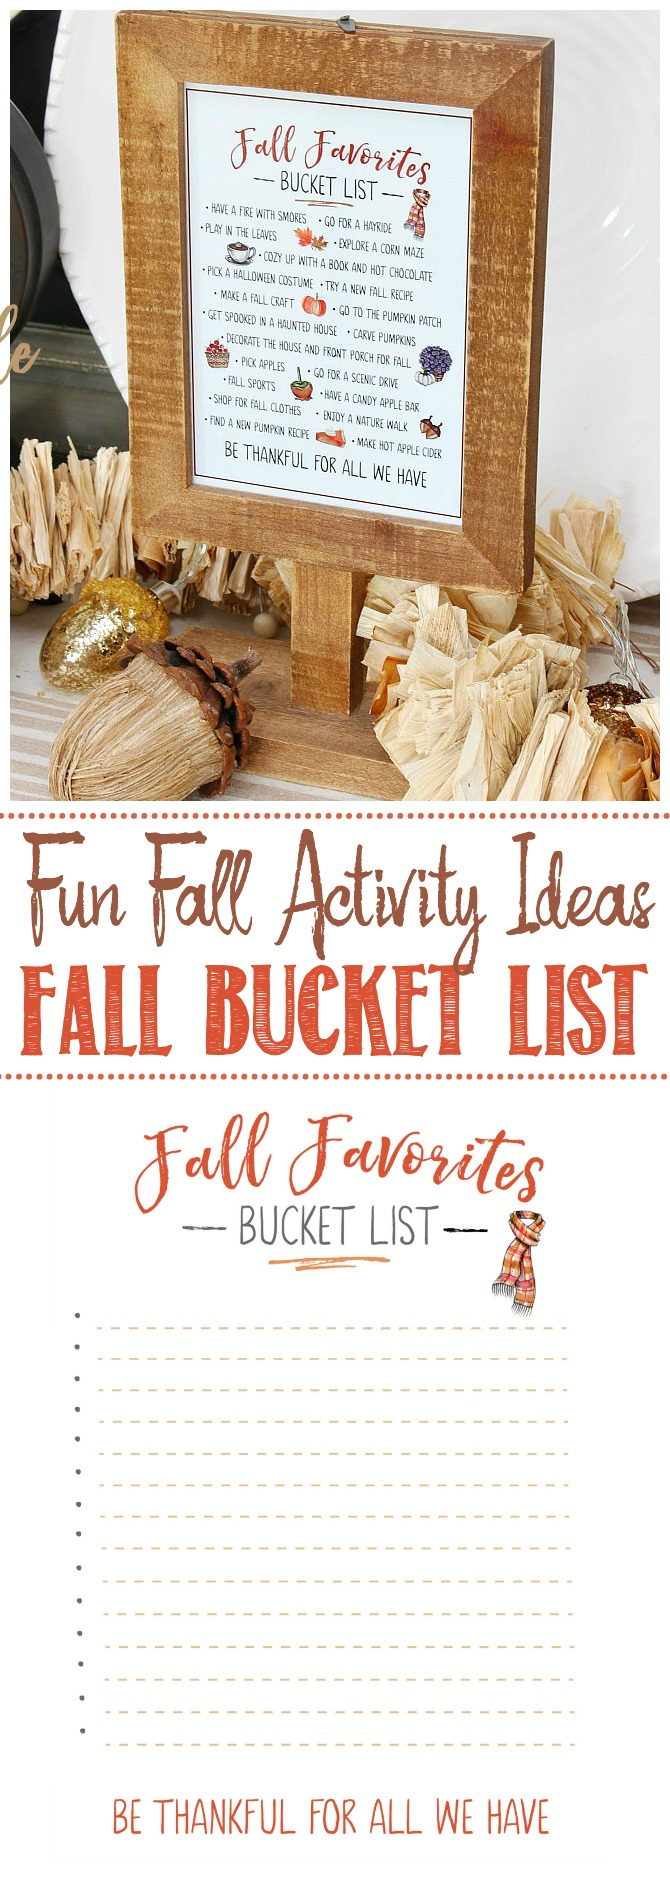 Fall favorites free printable bucket list in two versions.